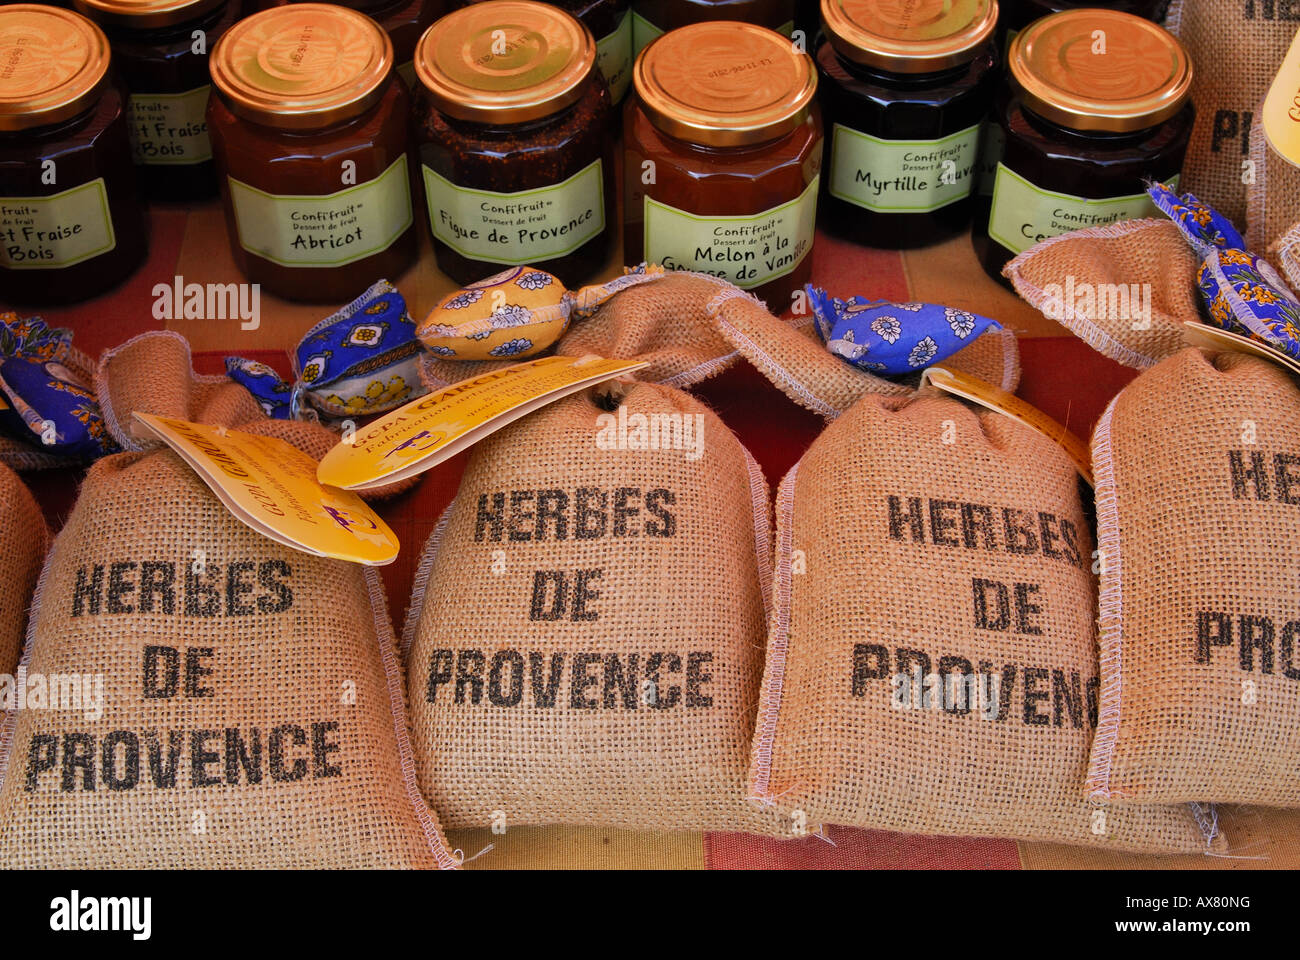 Provencal herbs on market stall in Nice market, Provence, France Stock Photo